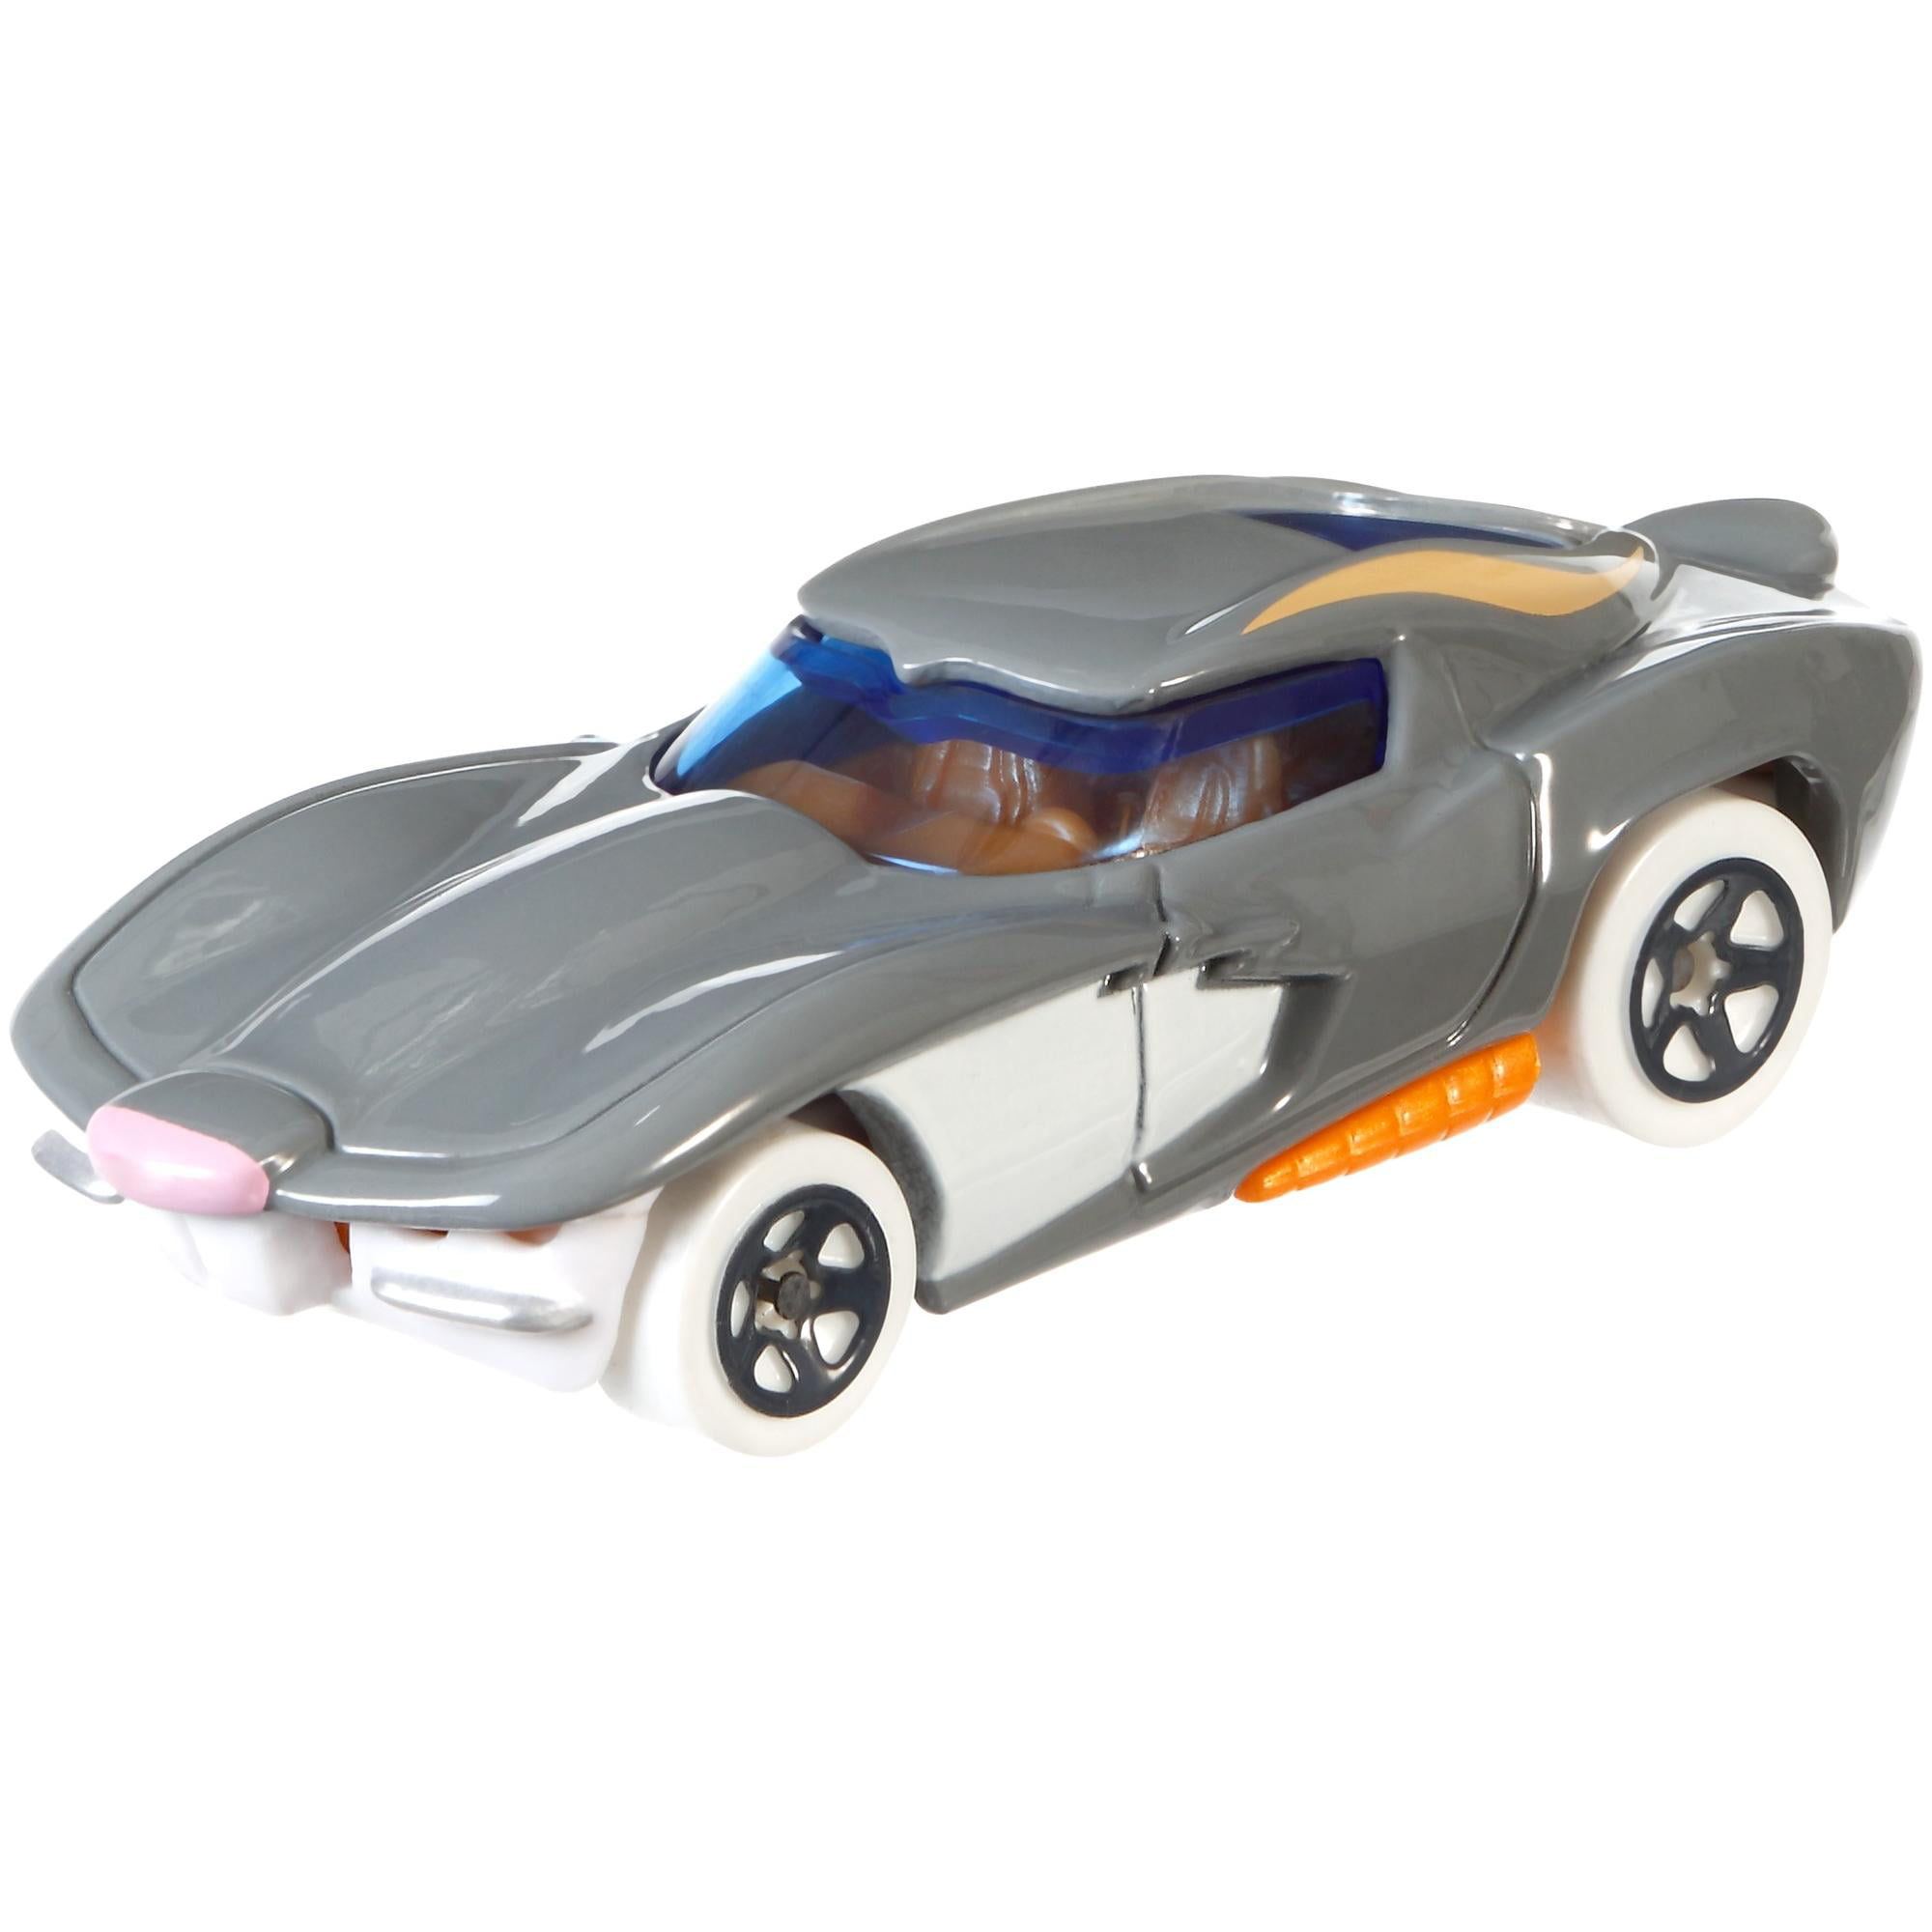 Hot Wheels Bugs Bunny Character Car by Mattel